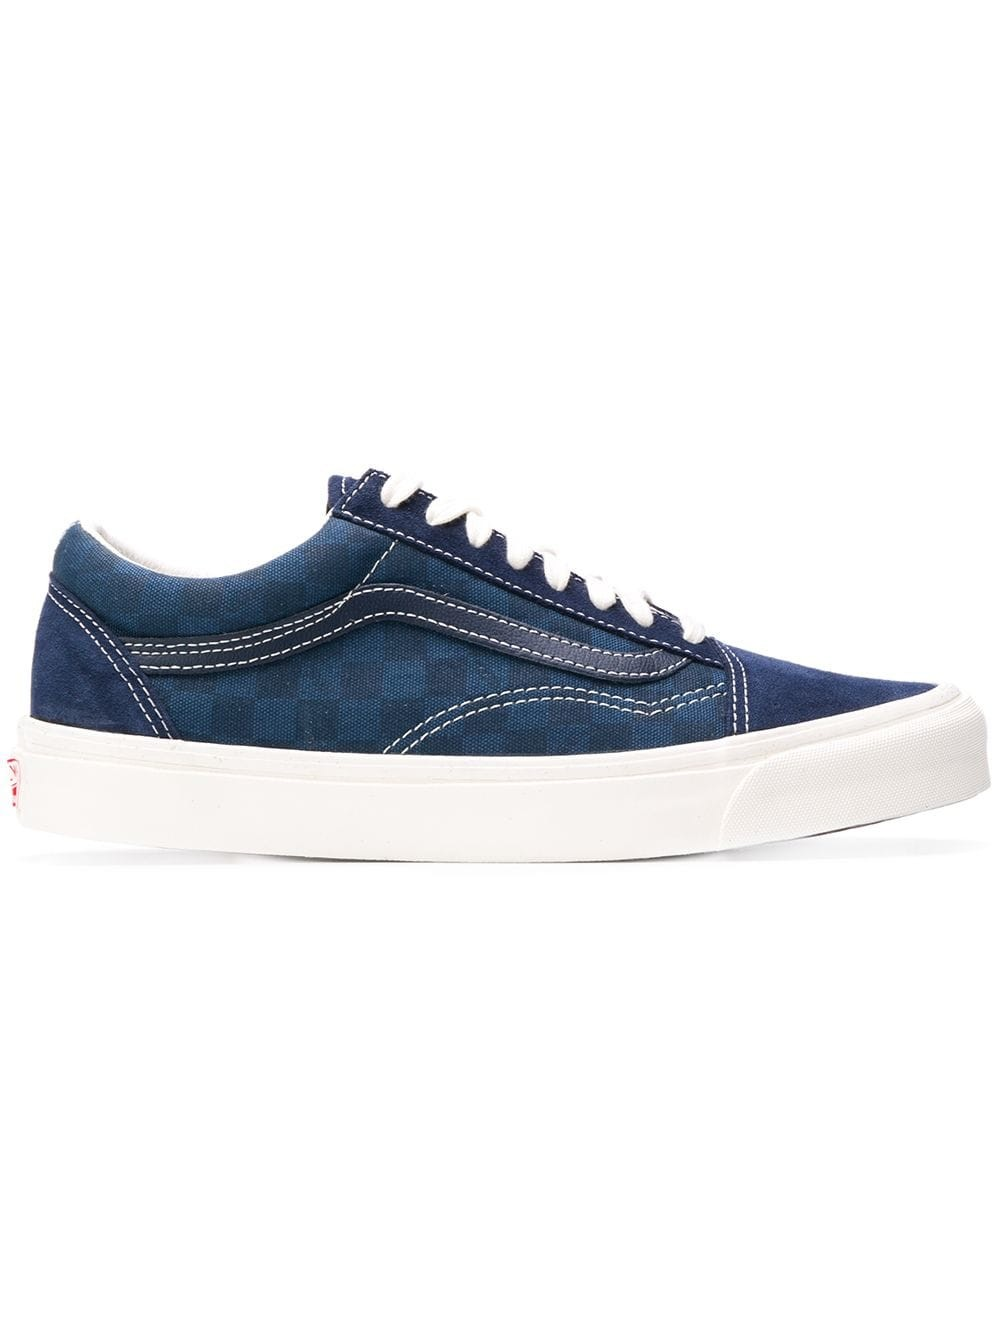 Vans Checked Lace-up Sneakers VA36C8U9 Azules